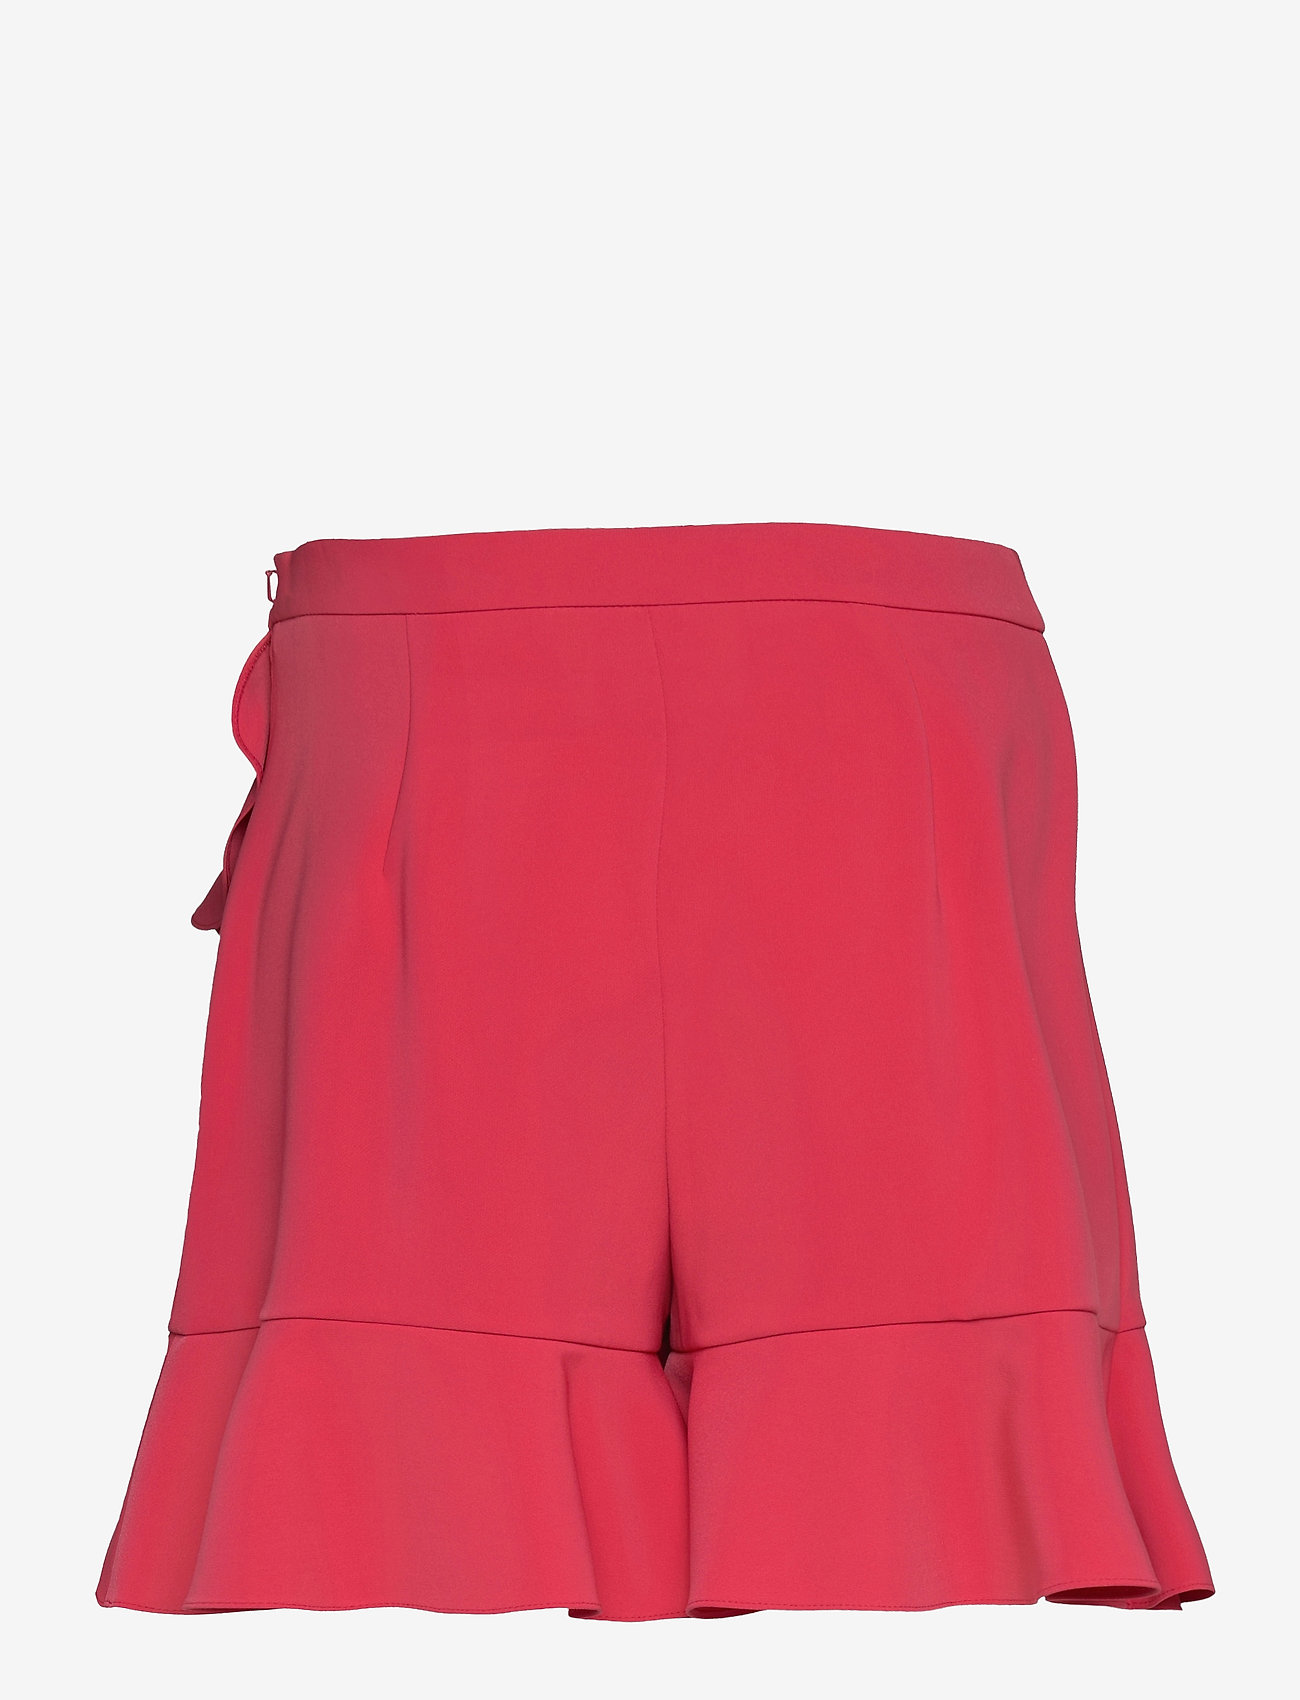 Boutique Moschino - Boutique Moschino TROUSERS - casual shorts - pink - 1